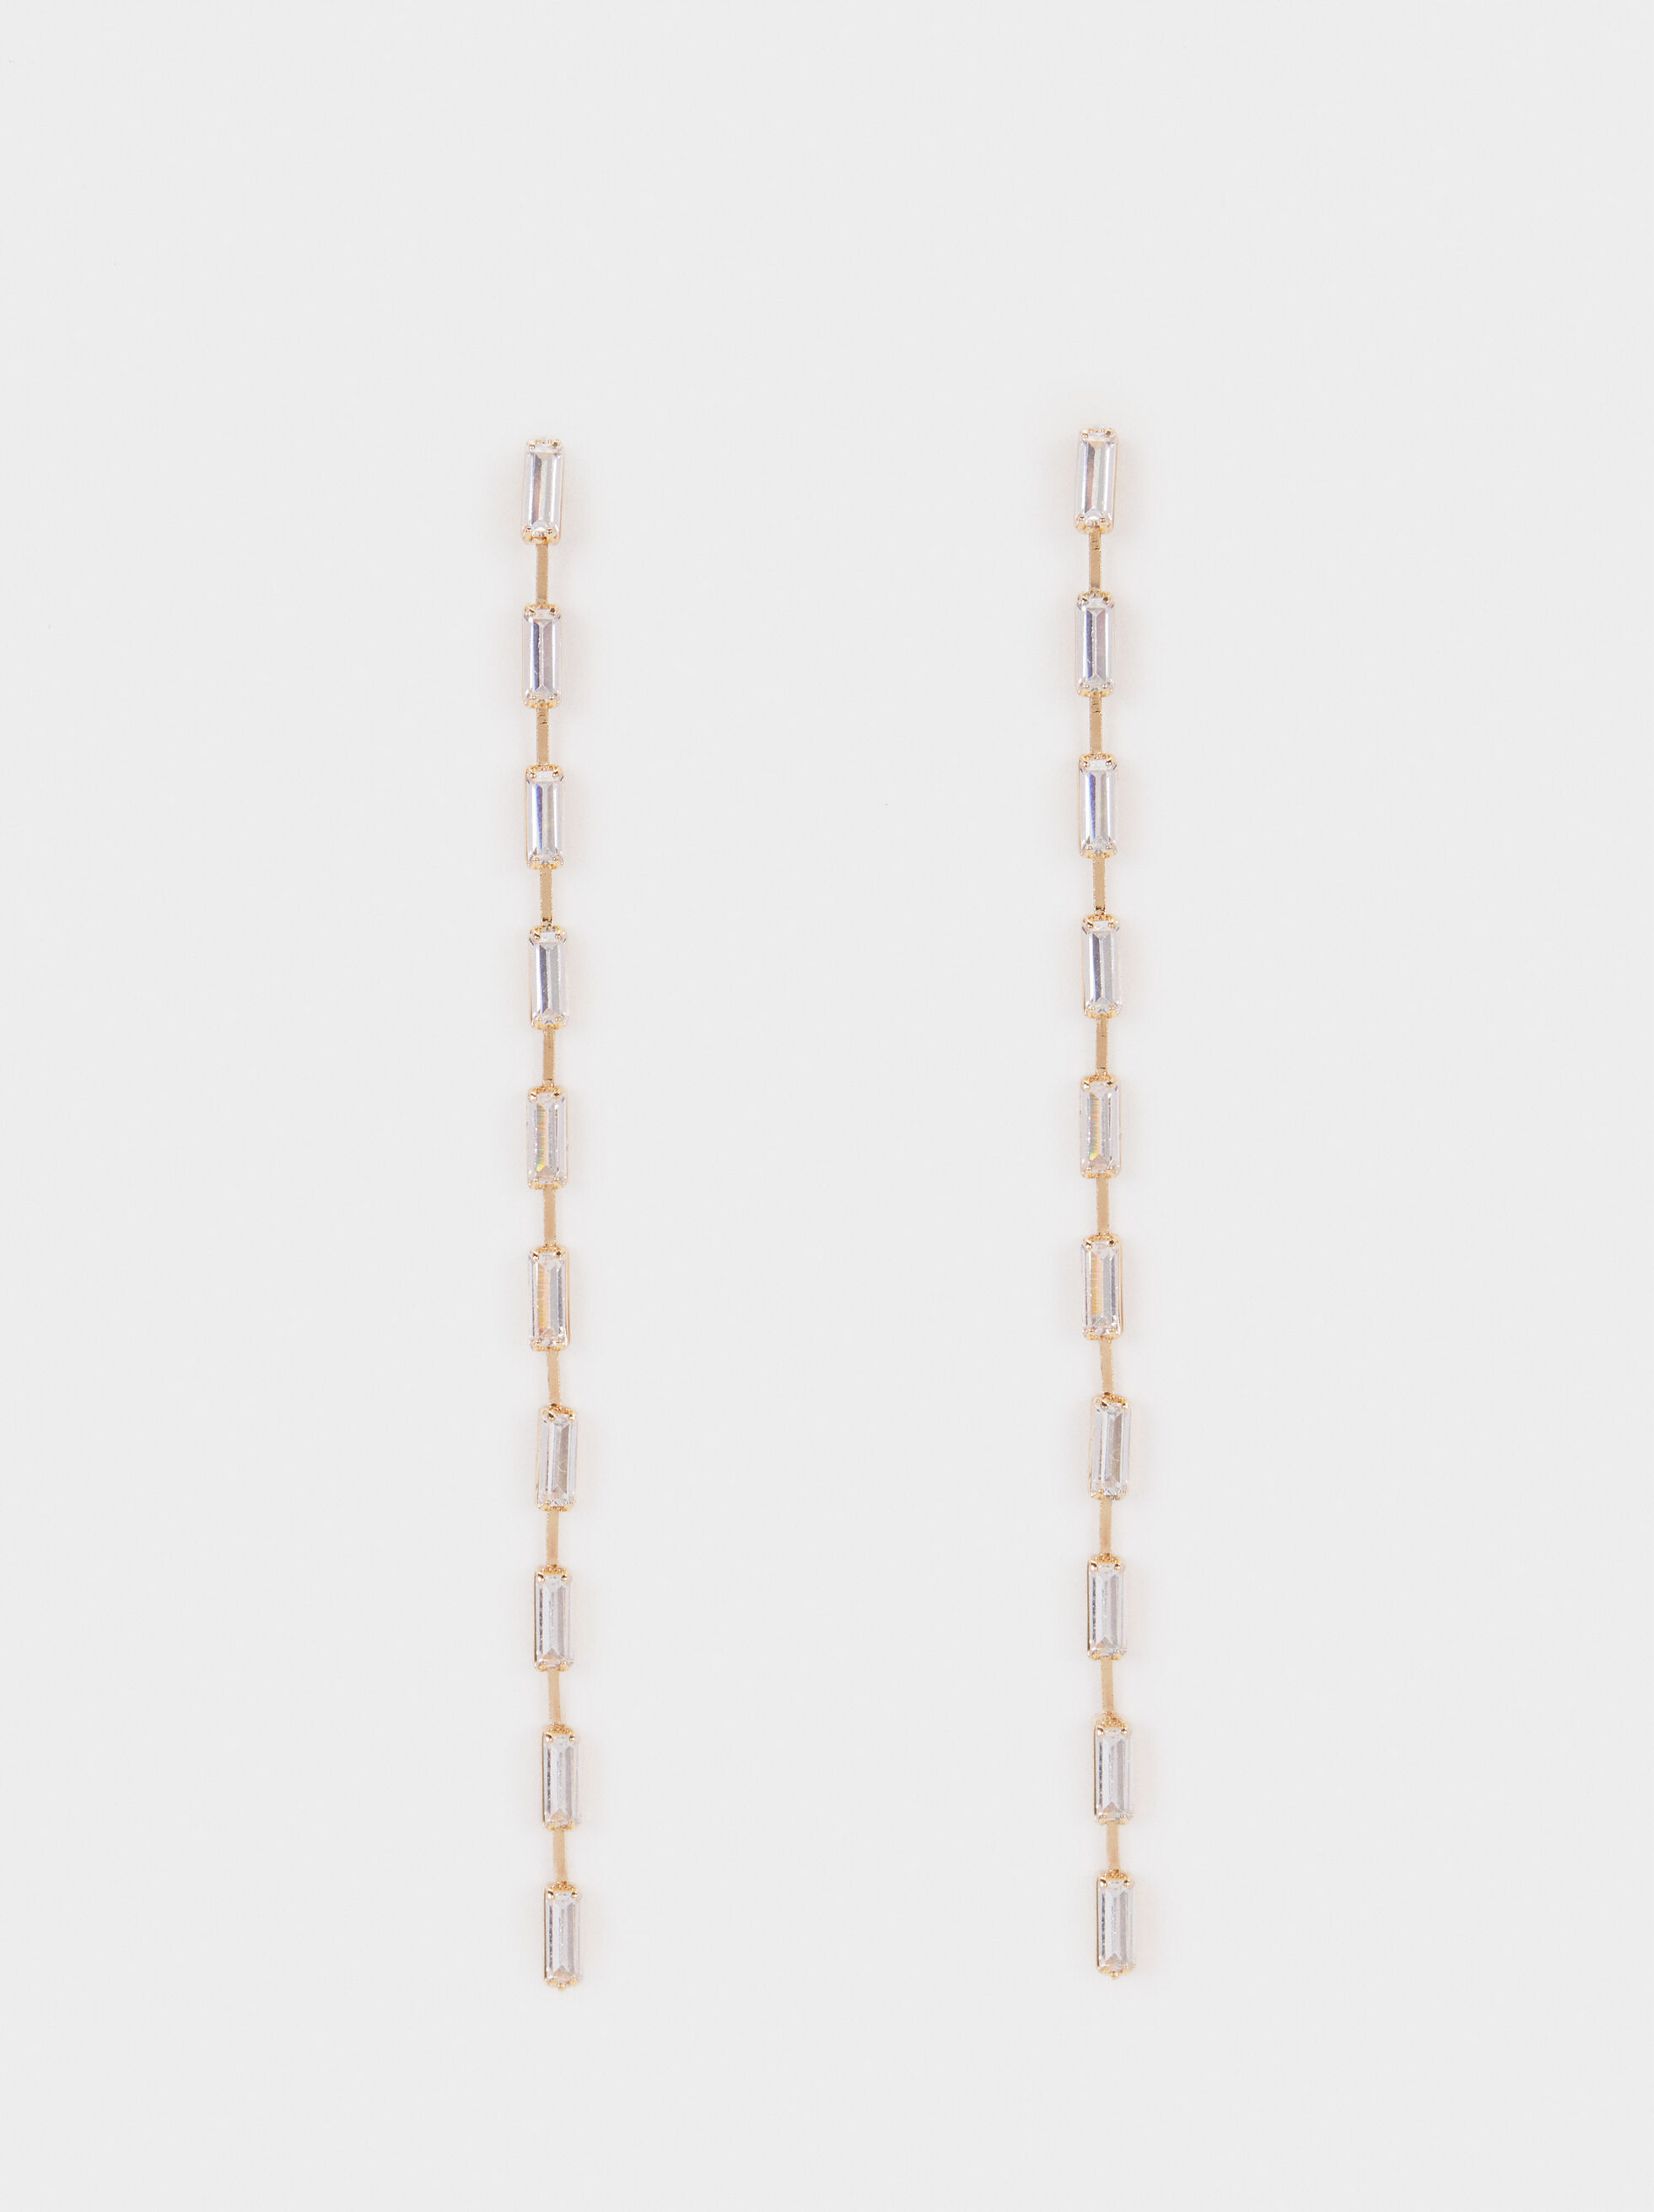 Extra Long Earrings With Crystals, Golden, hi-res